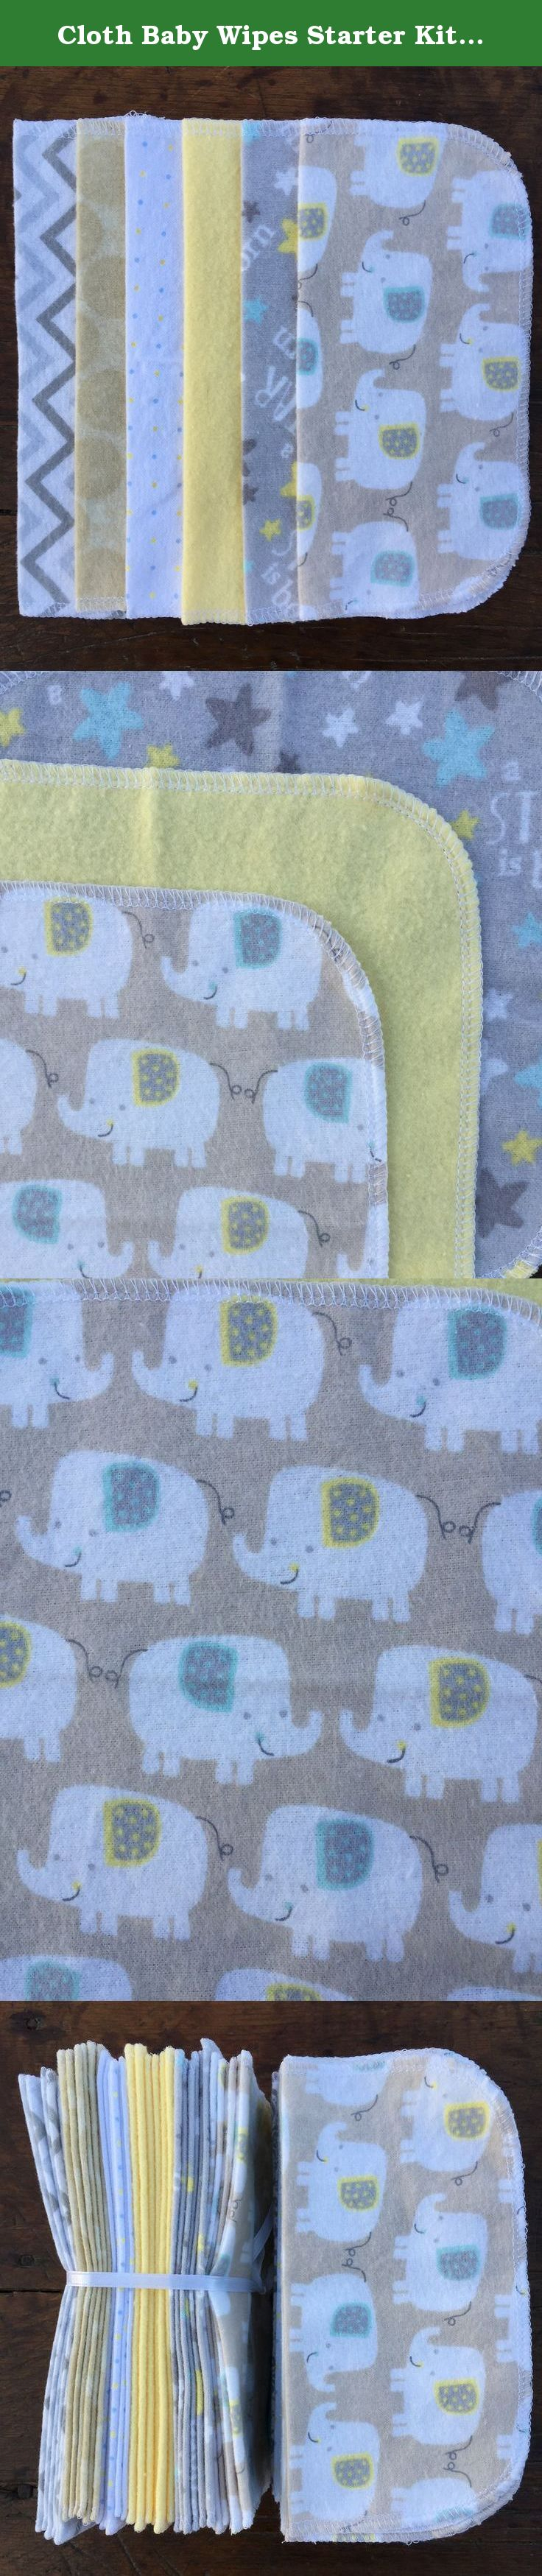 Cloth Baby Wipes Starter Kit. Set of 3 Dozen Wipes.C. Reusable Cloth Wipes. Baby Shower Gift. Eco Friendly. Reusable Cloth Napkin. Reusable Dryer Sheets. Taupe Elephants. These 8 inch square cloth wipes are made of one layer of super soft 100% cotton flannel. Whether you use these to clean baby's hands, face, or bum, you'll love knowing that they are gentle on your little one's skin. As an added bonus, using reusable wipes means lowering your carbon footprint! Set of 36 wipes. This is a...